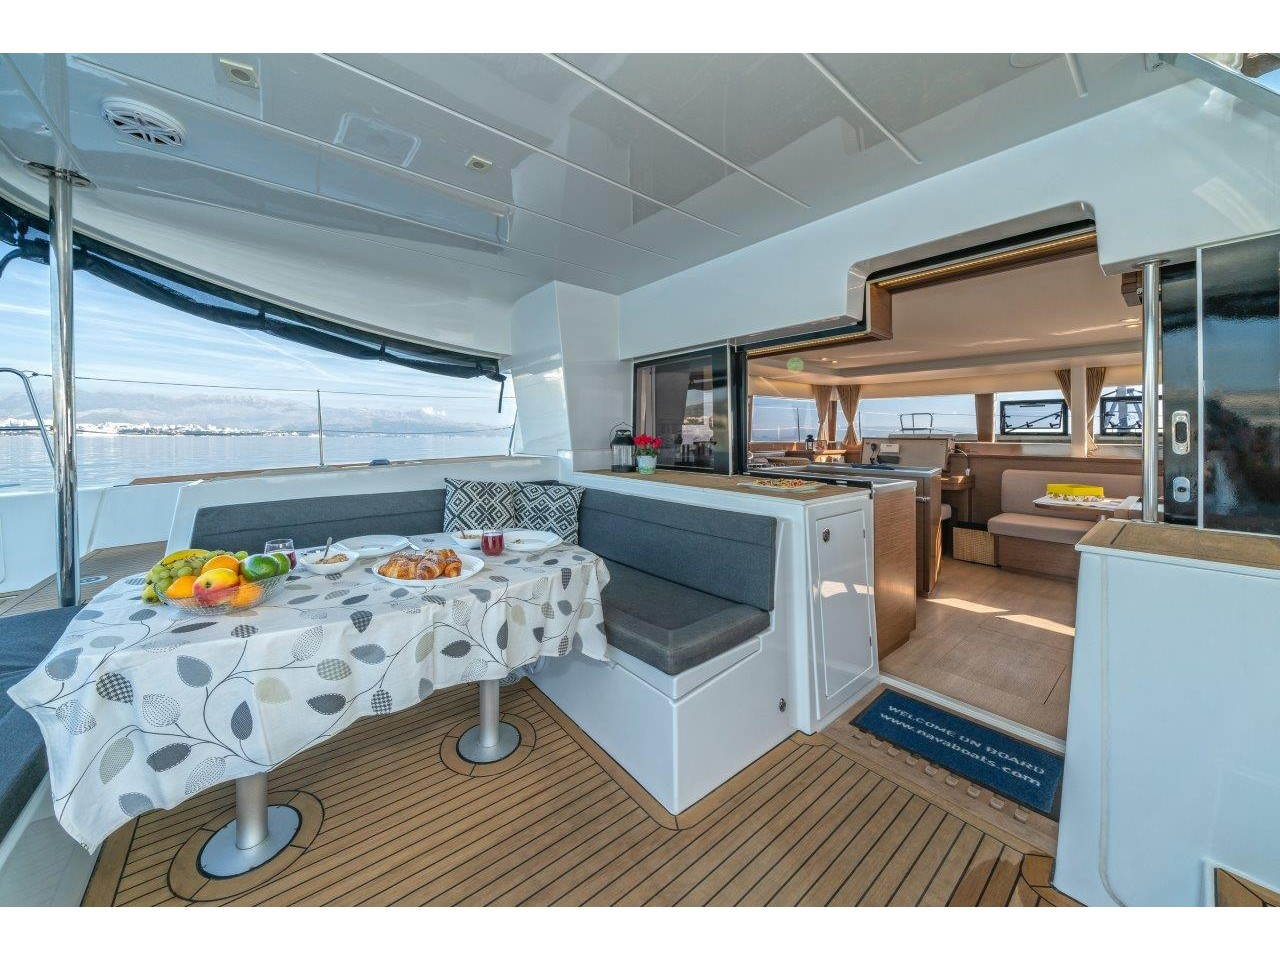 Lagoon 450 Sport LUX equipped with generator, A/C (PRINCESS SOFIA) Interior image - 4